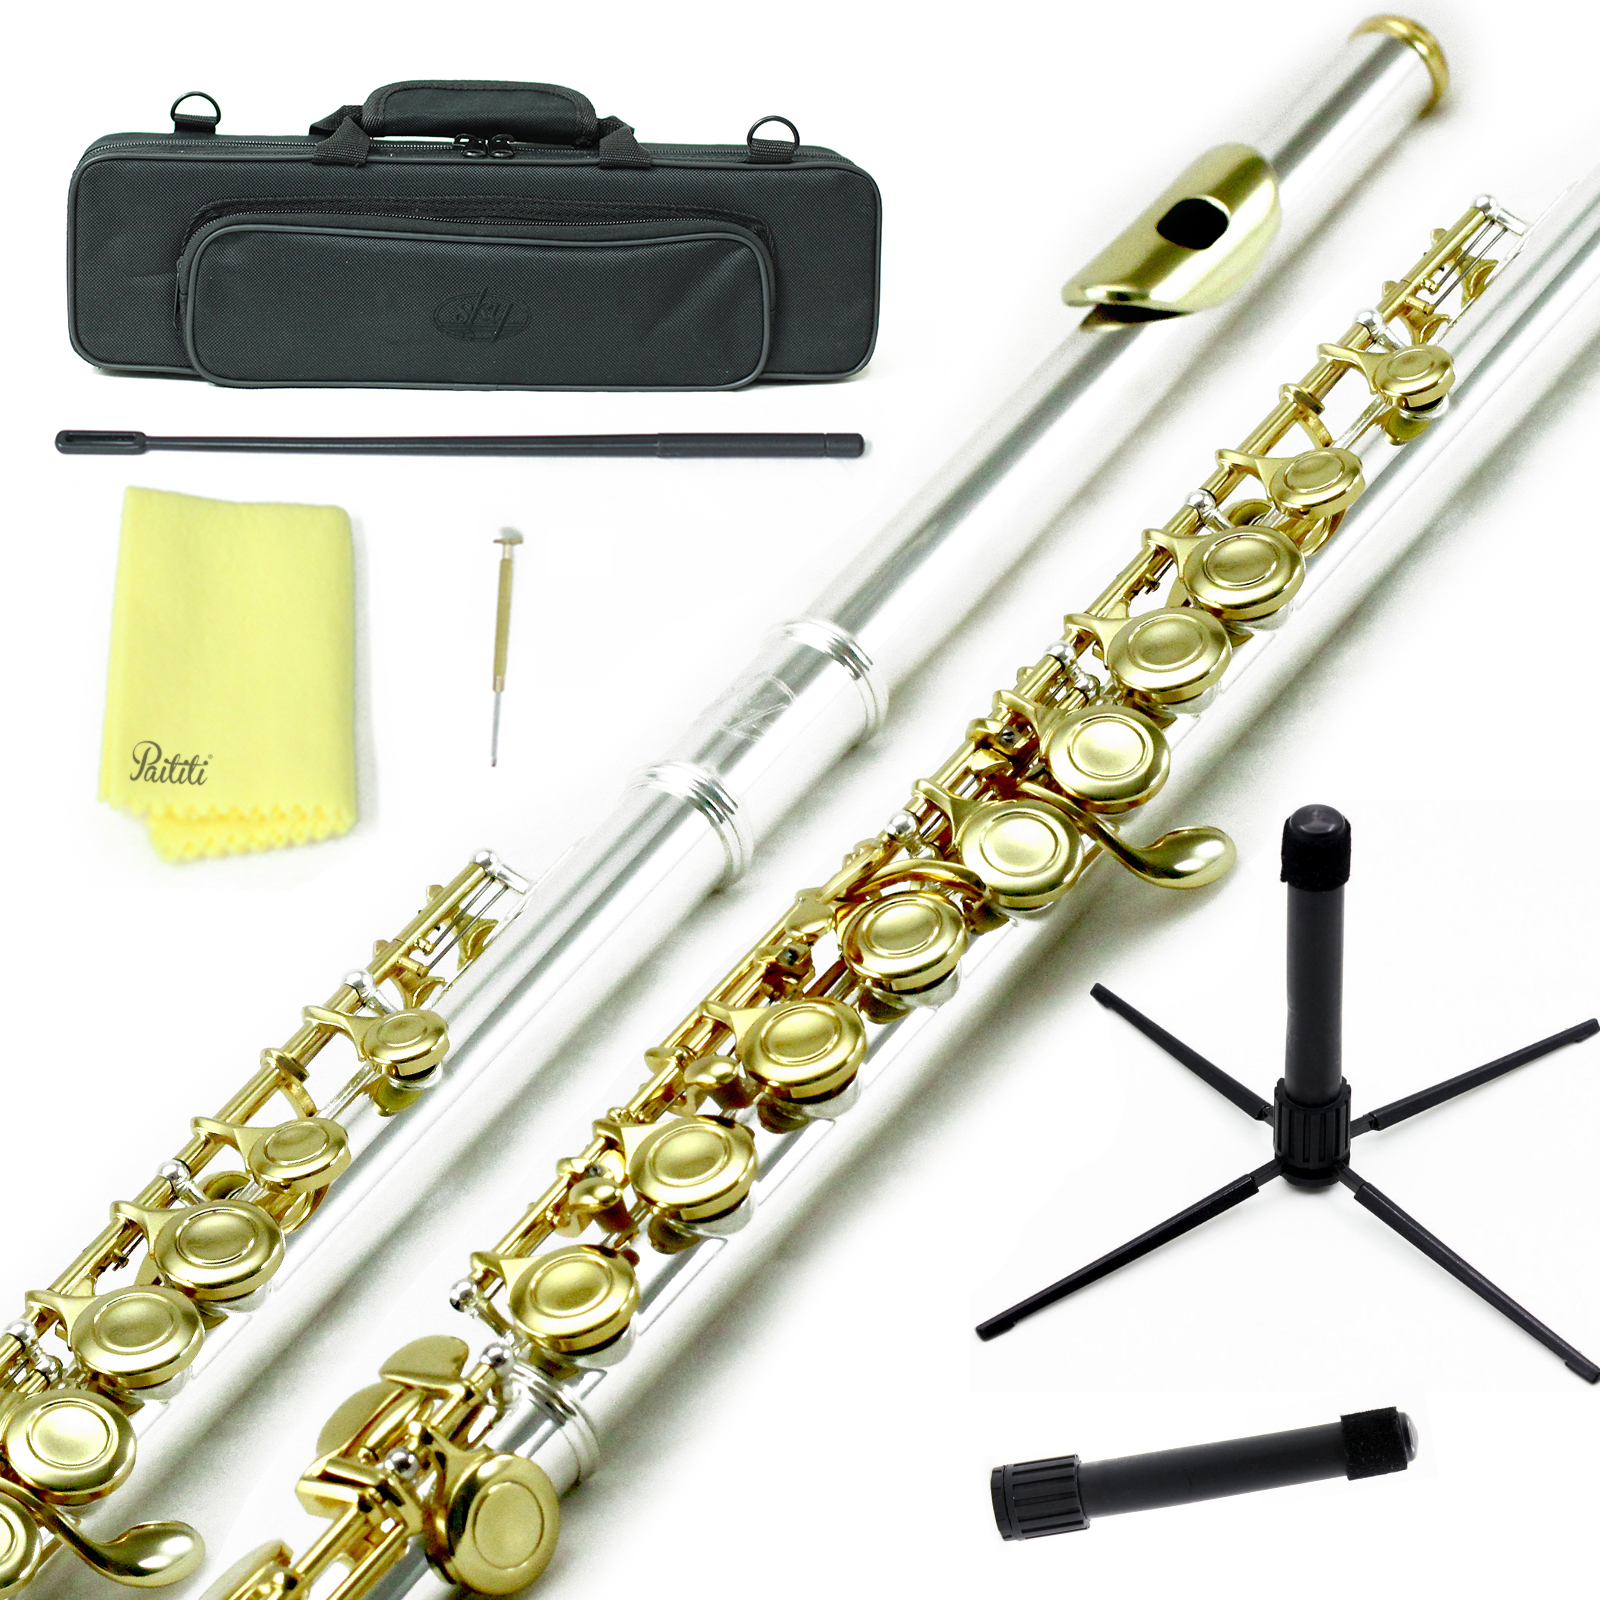 Sky Closed Hole C Flute with Lightweight Case, Cleaning Rod, Cloth, Joint Grease and Screw Driver - Silver Gold